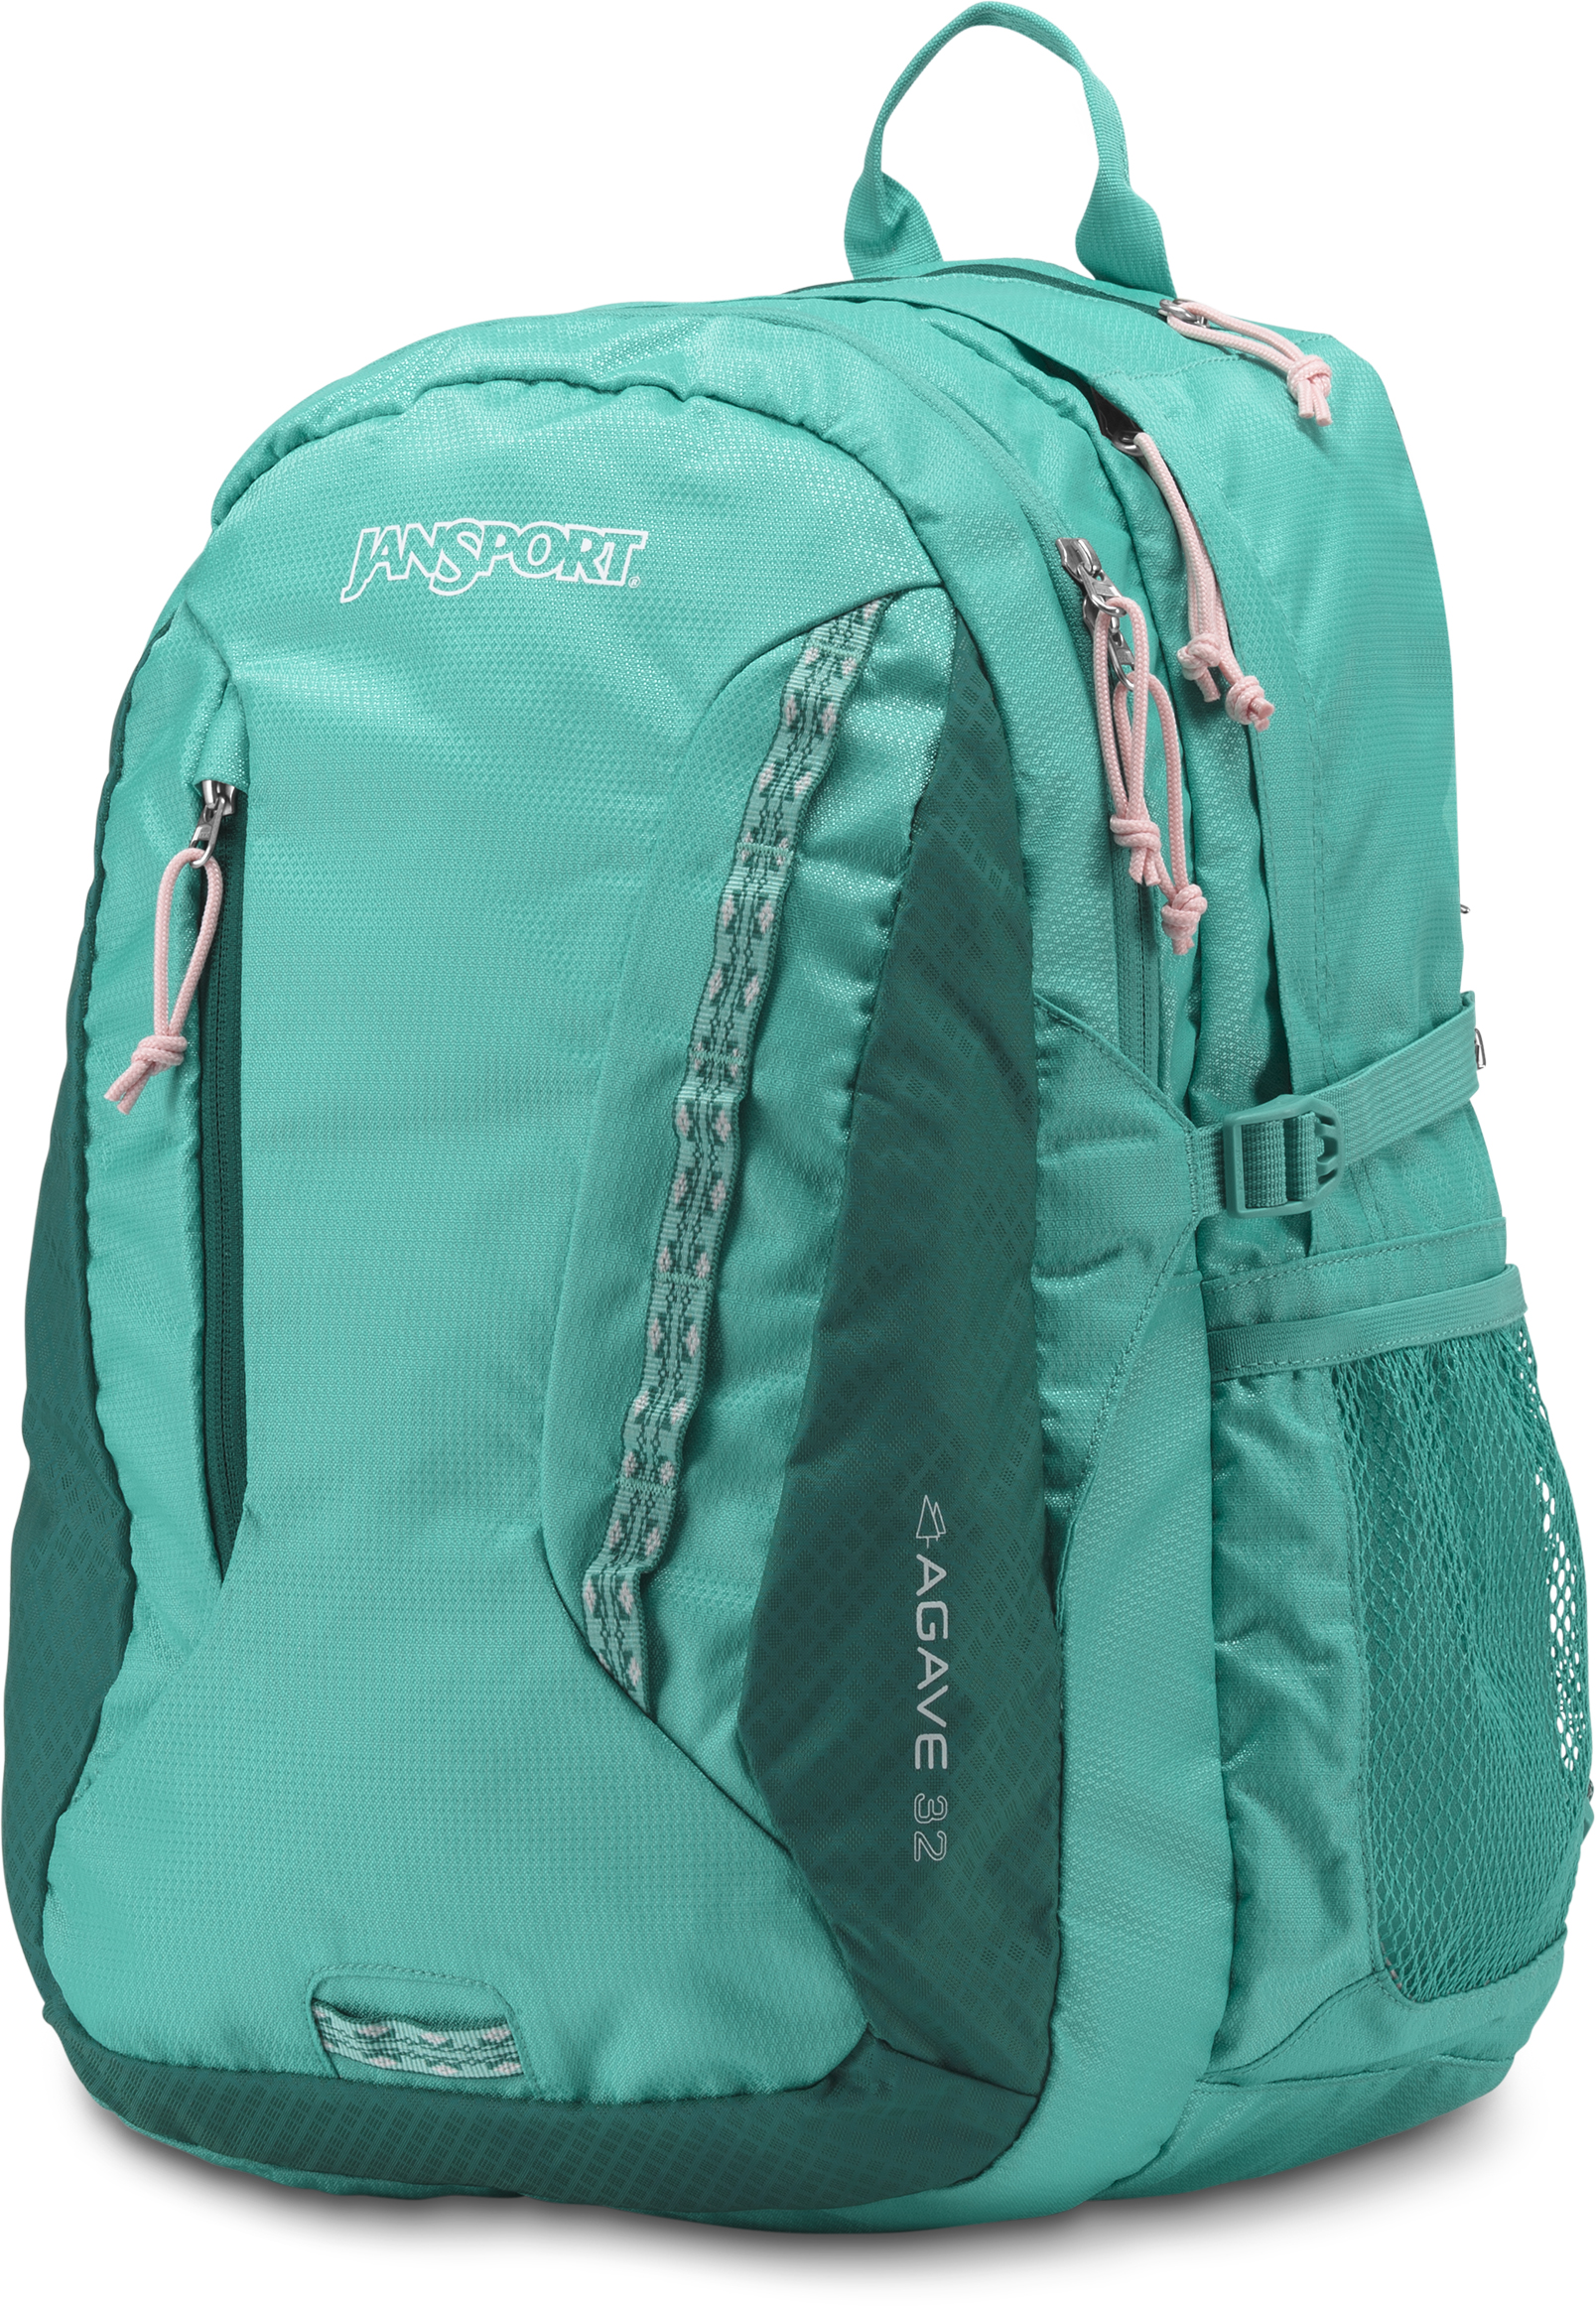 256a87bccbf82 Jansport Daypacks and school bags